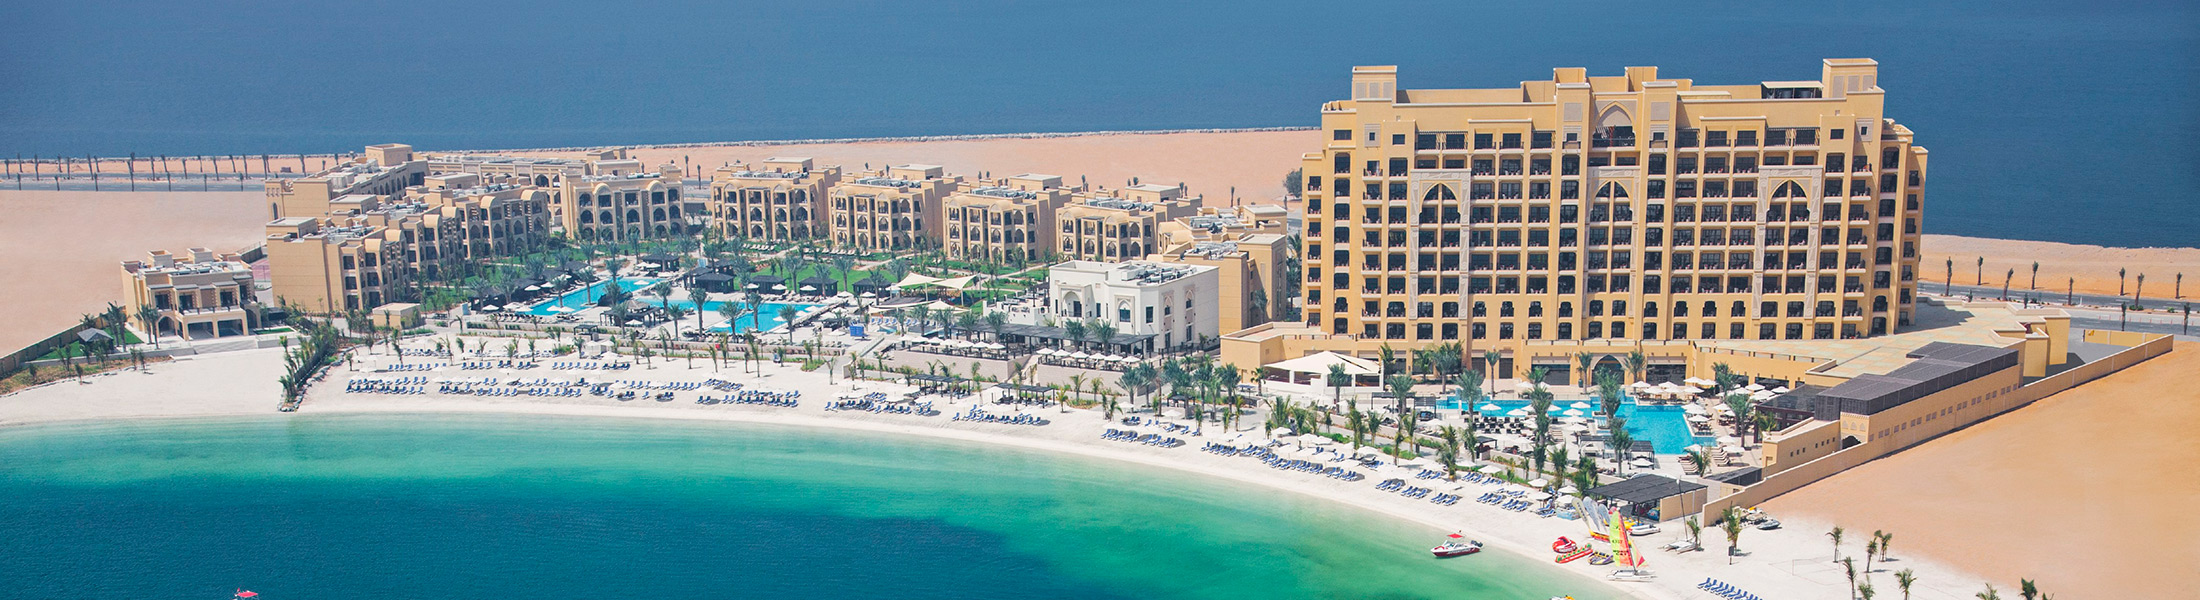 Aerial view of hotel and beach at DoubleTree by Hilton Marjan Island